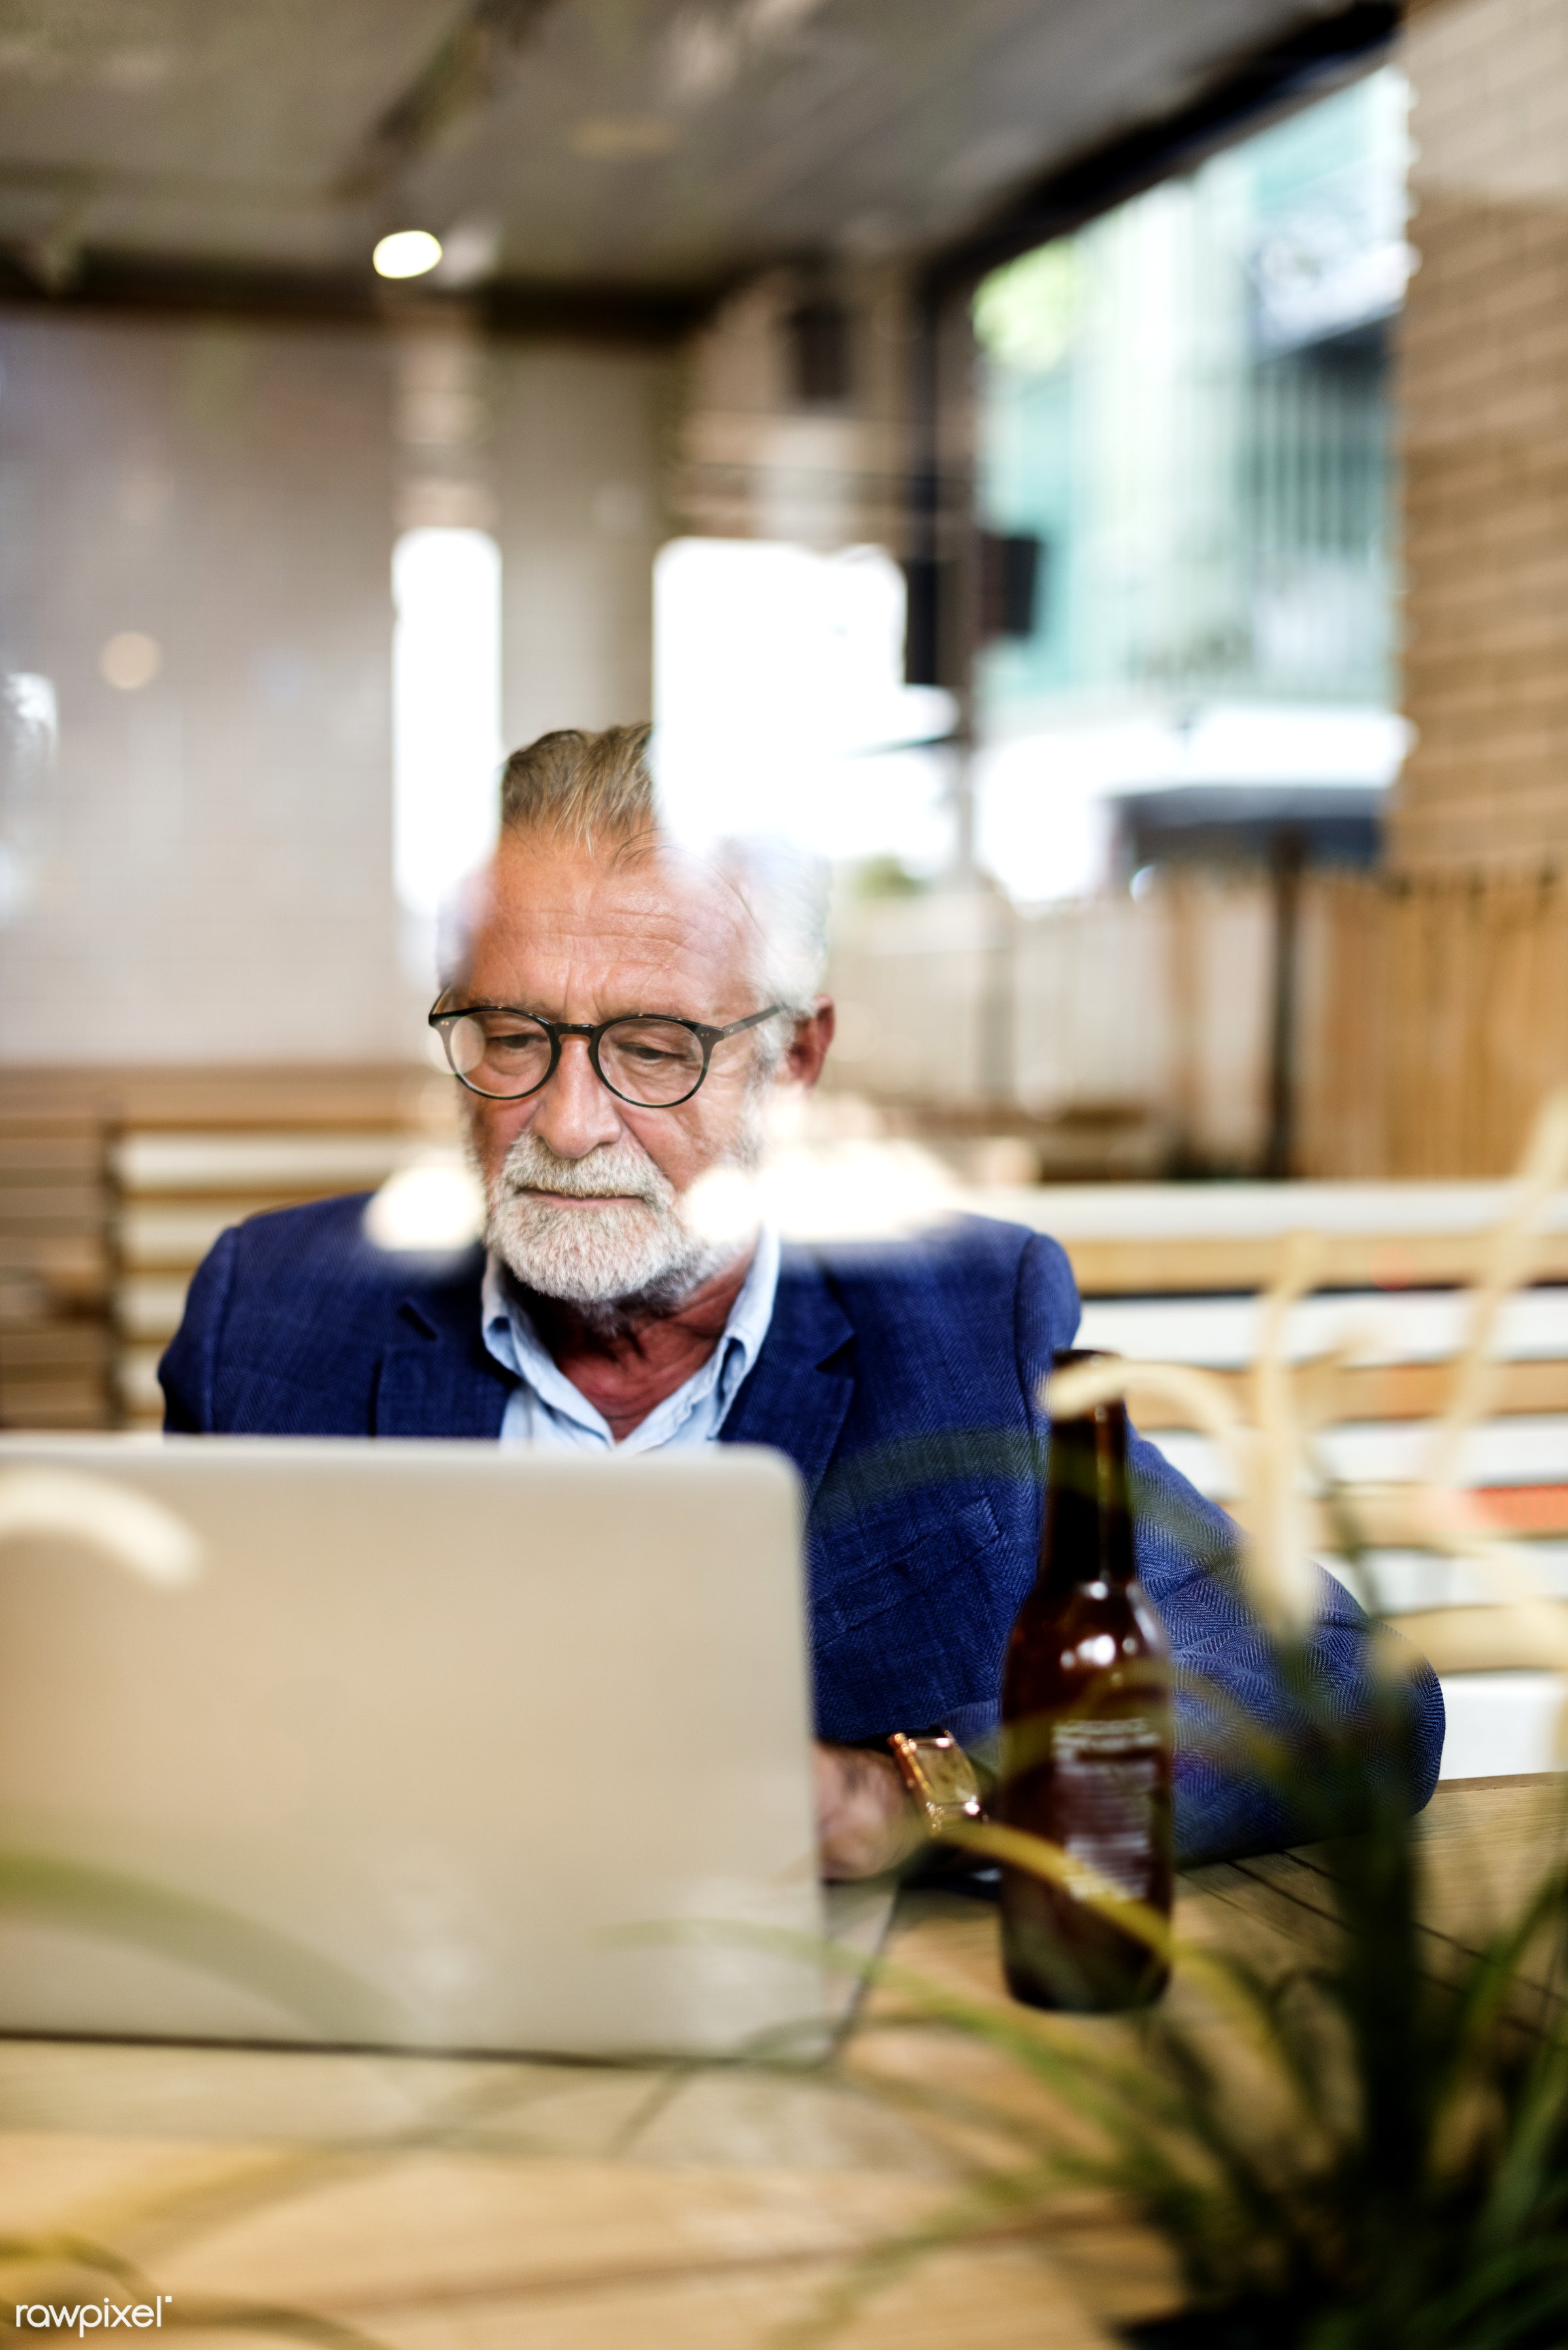 Elderly man is using computer laptop - alone, casual, coffee shop, communication, computer, connection, device, digital,...